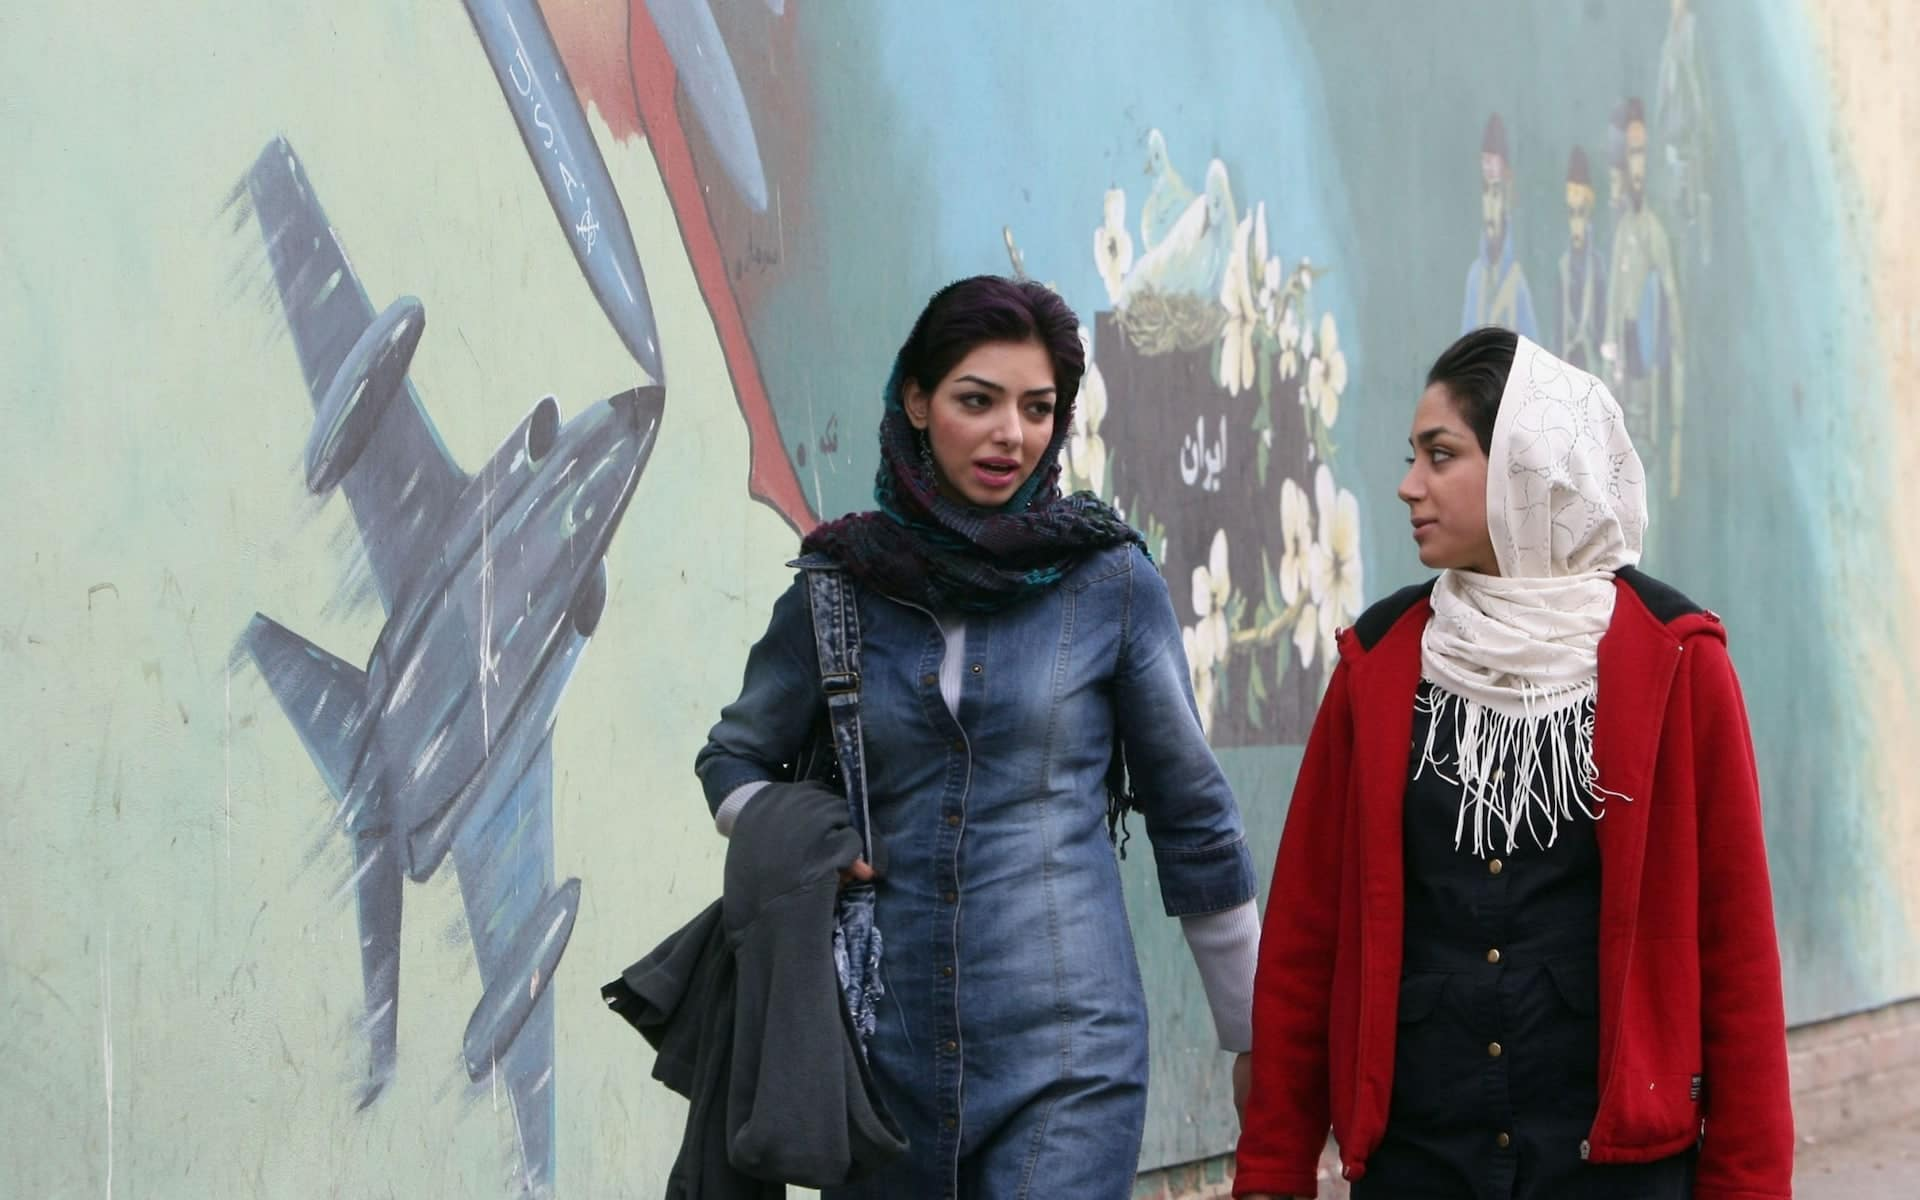 Iran Responds with Morality Police to Women's Hijab Protests, Iran Responds with Morality Police to Women's Hijab Protests